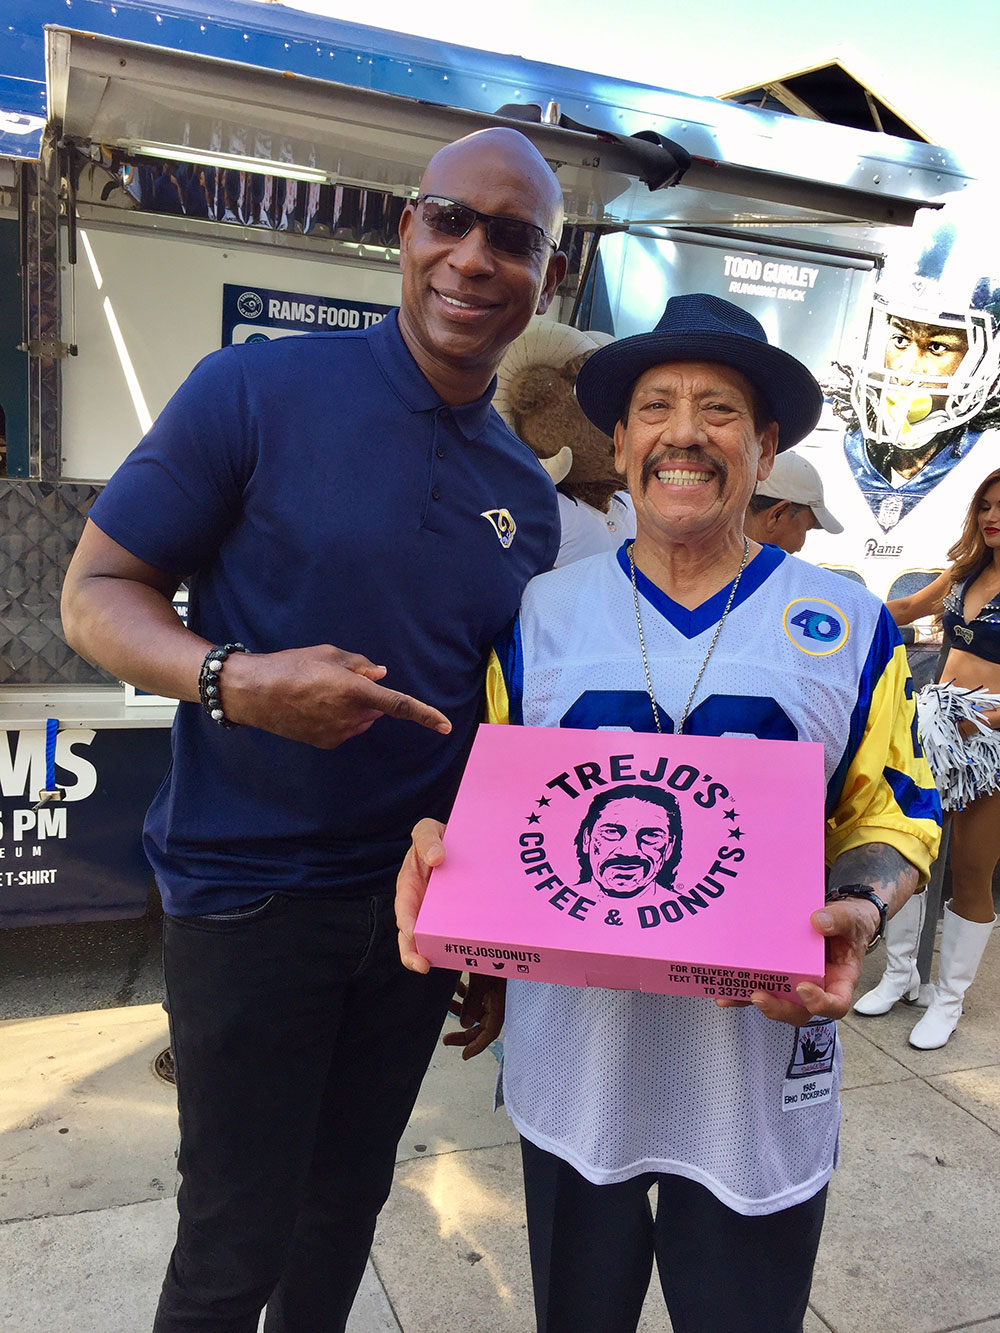 danny trejo's donuts and coffee